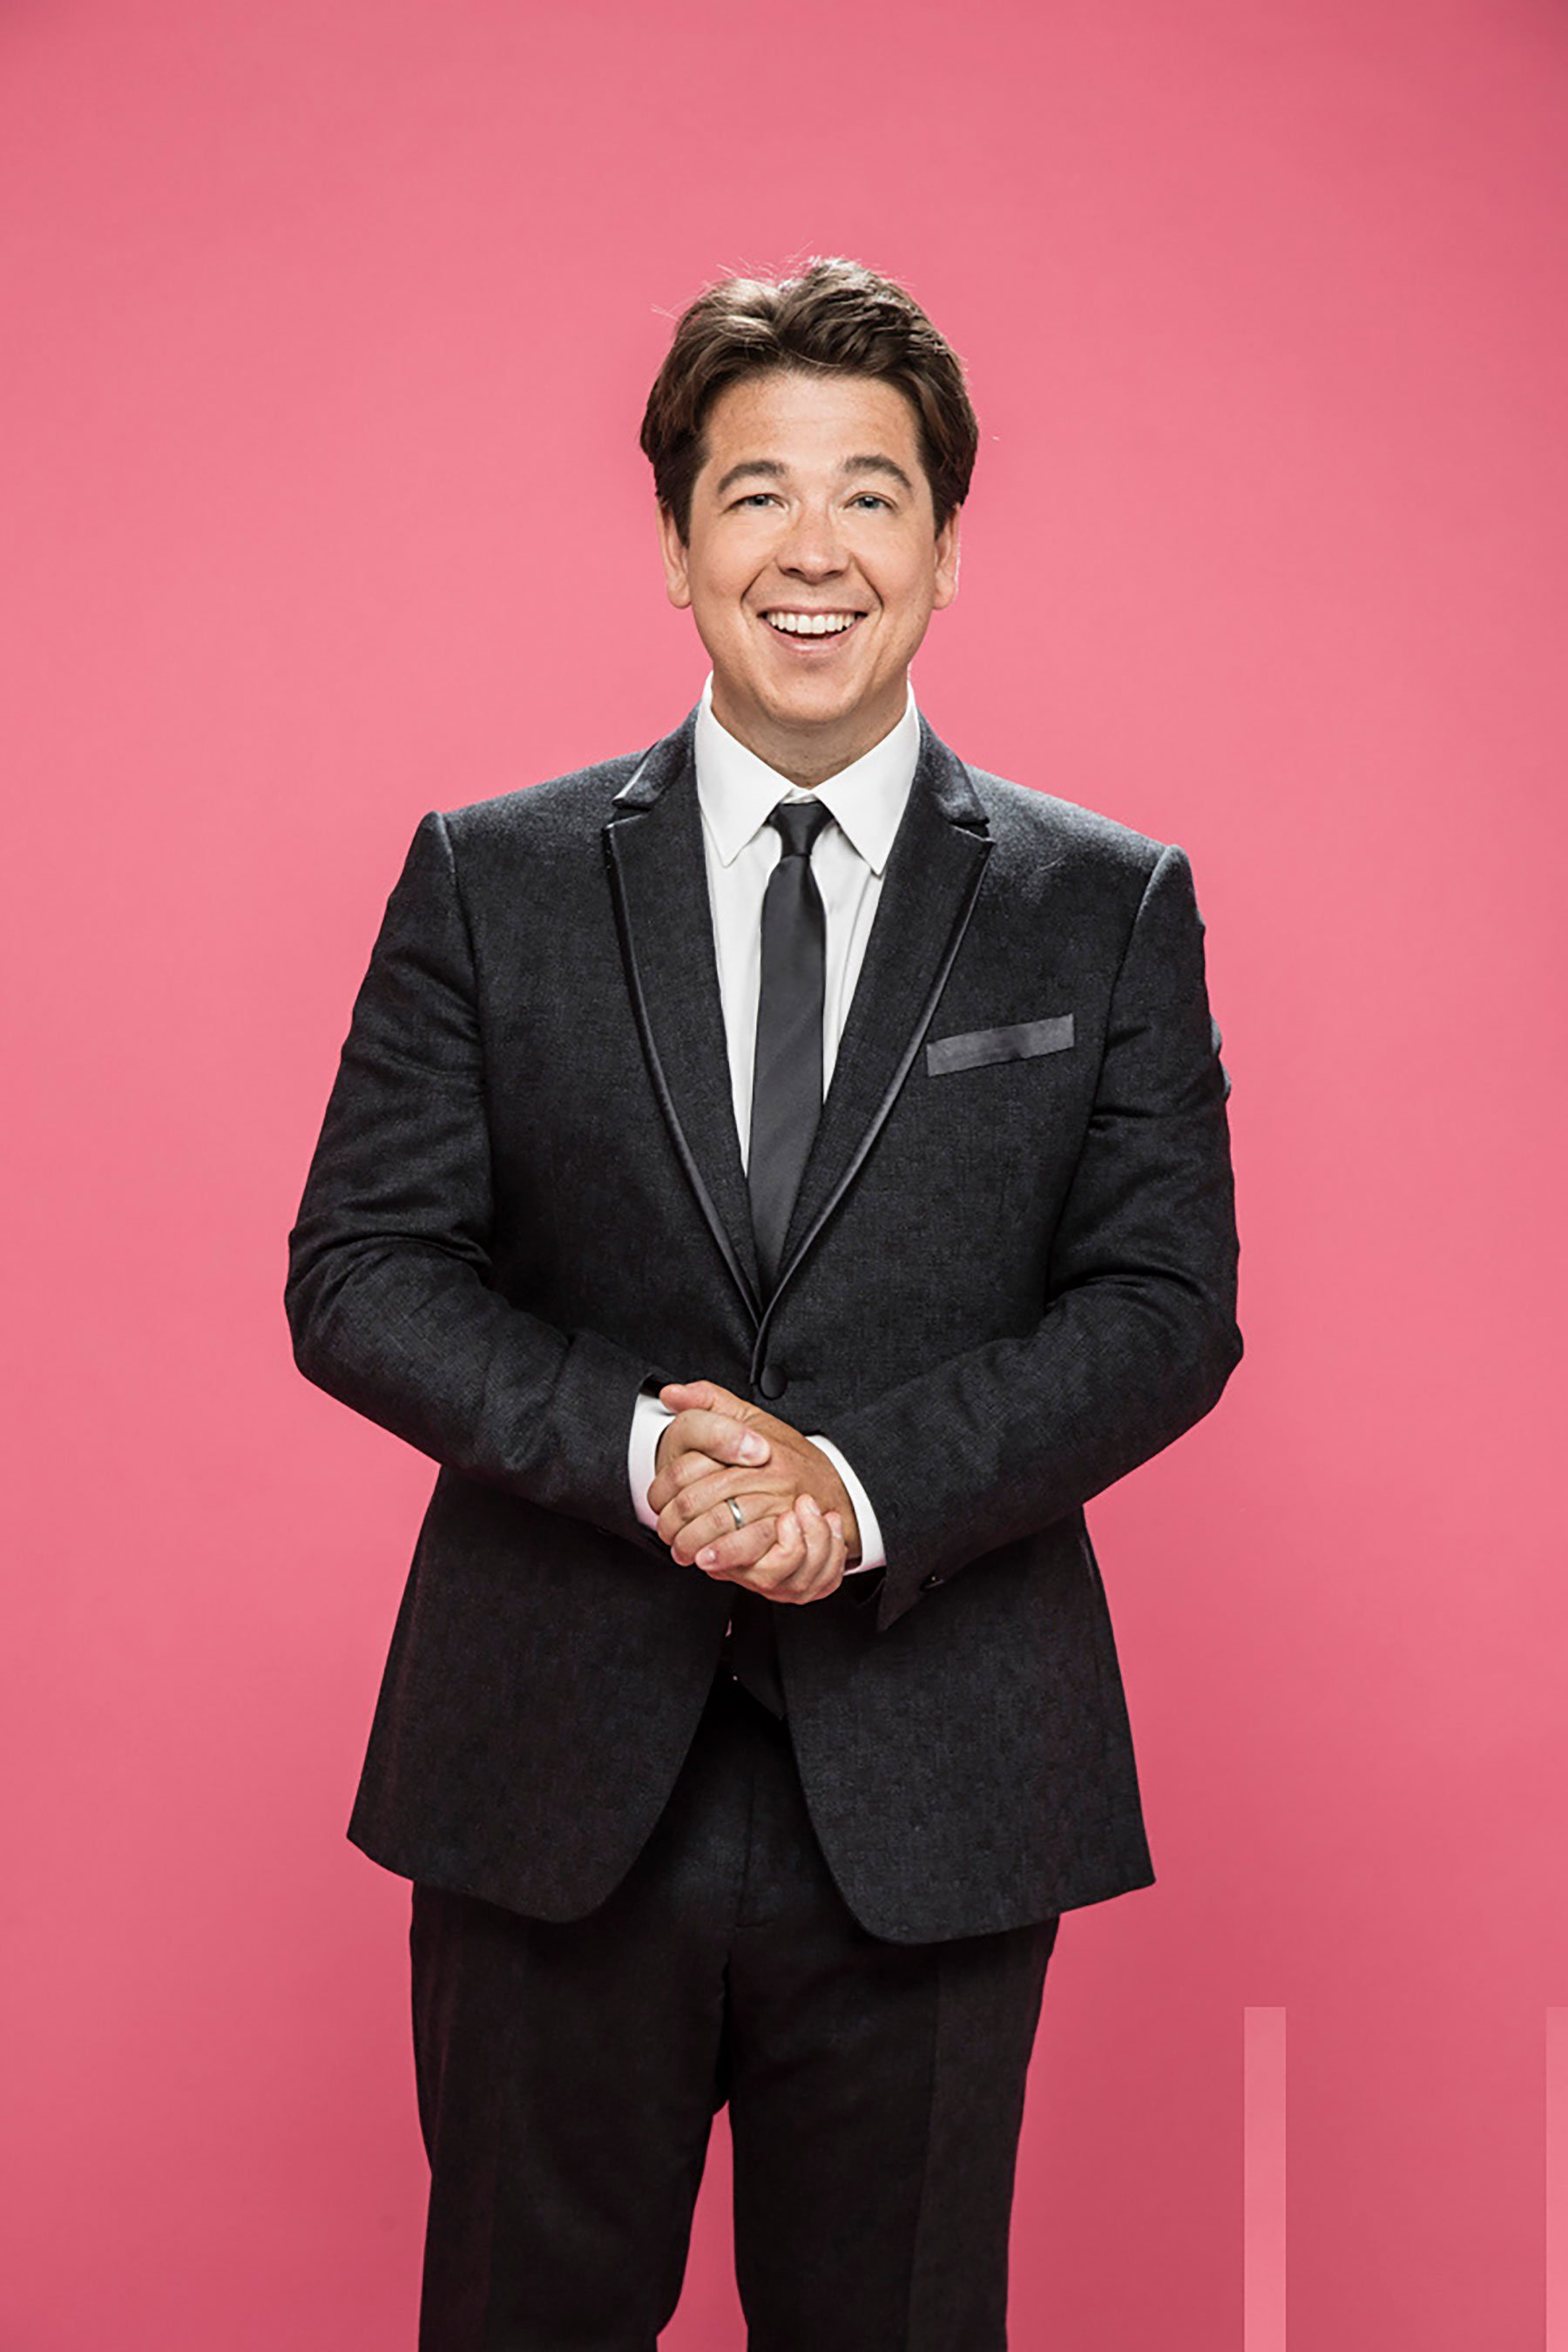 michael mcintyre - photo #7